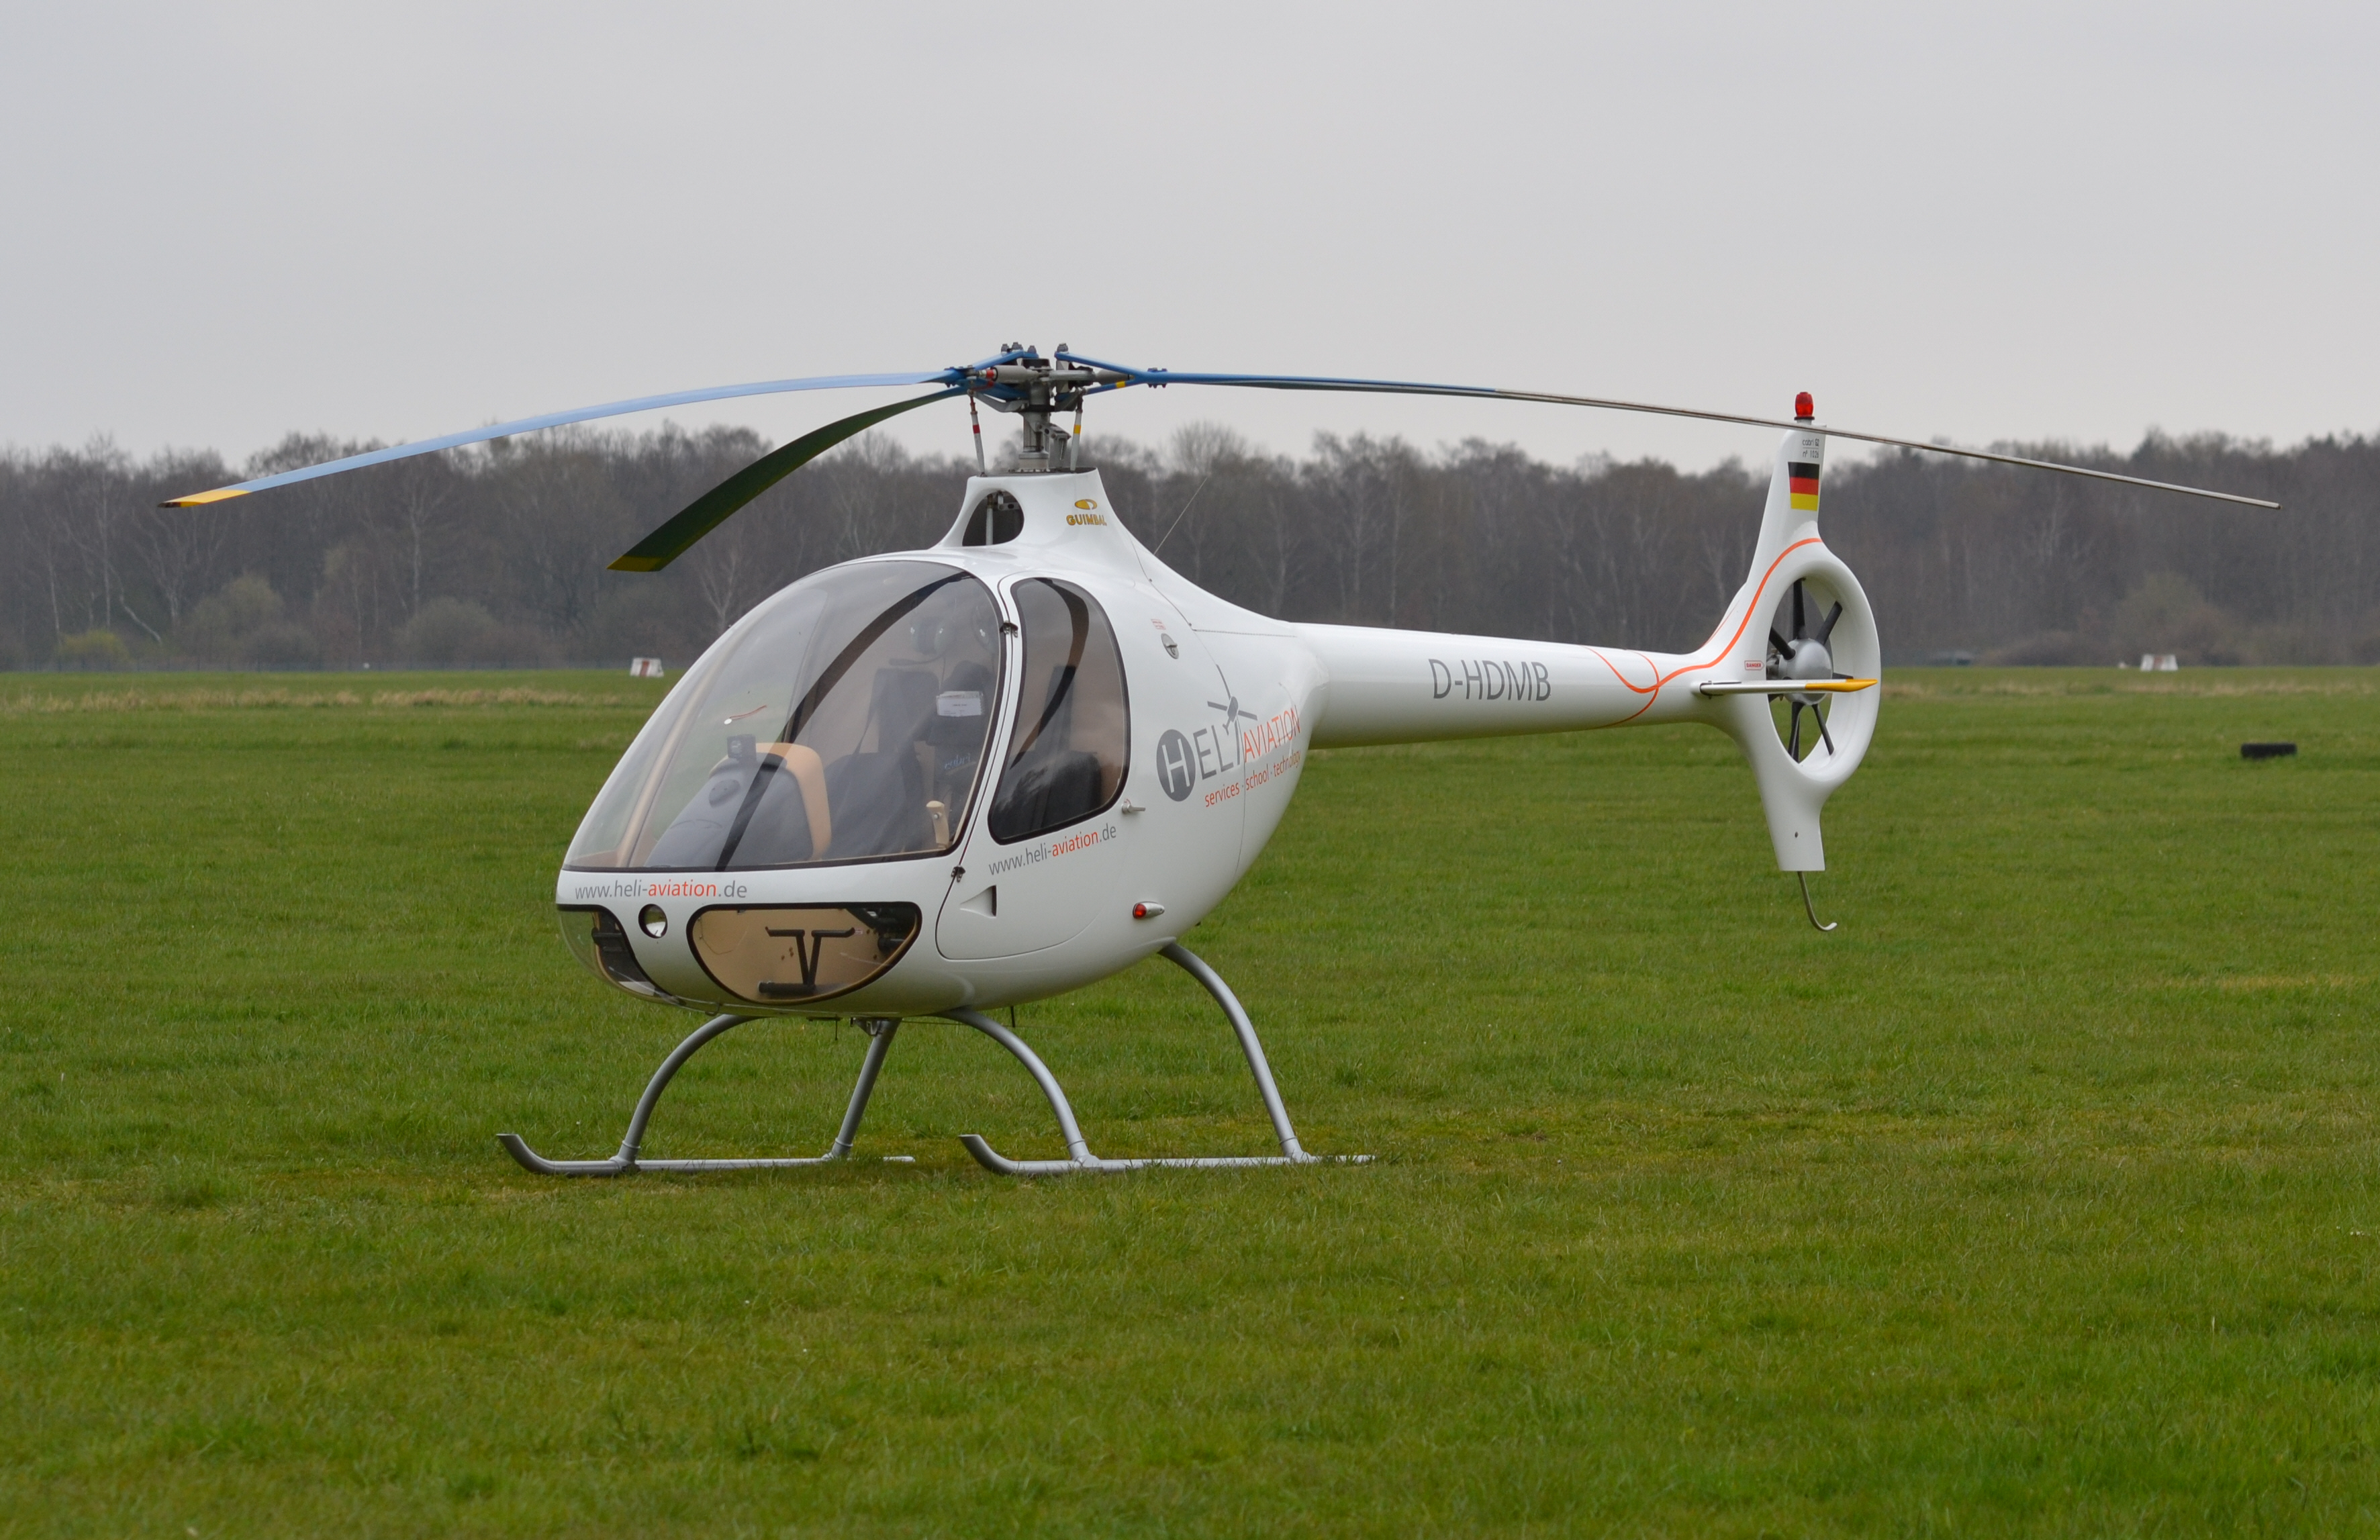 4 seater helicopter with File Guimbal Cabri G2 D Hdmb 01 on Acdata 269 en further 49277 Helo4 Future Hunter besides Cessna 182 Skylane also Malawis Felix Kambwiri Builds Helicopter as well Dlwall.